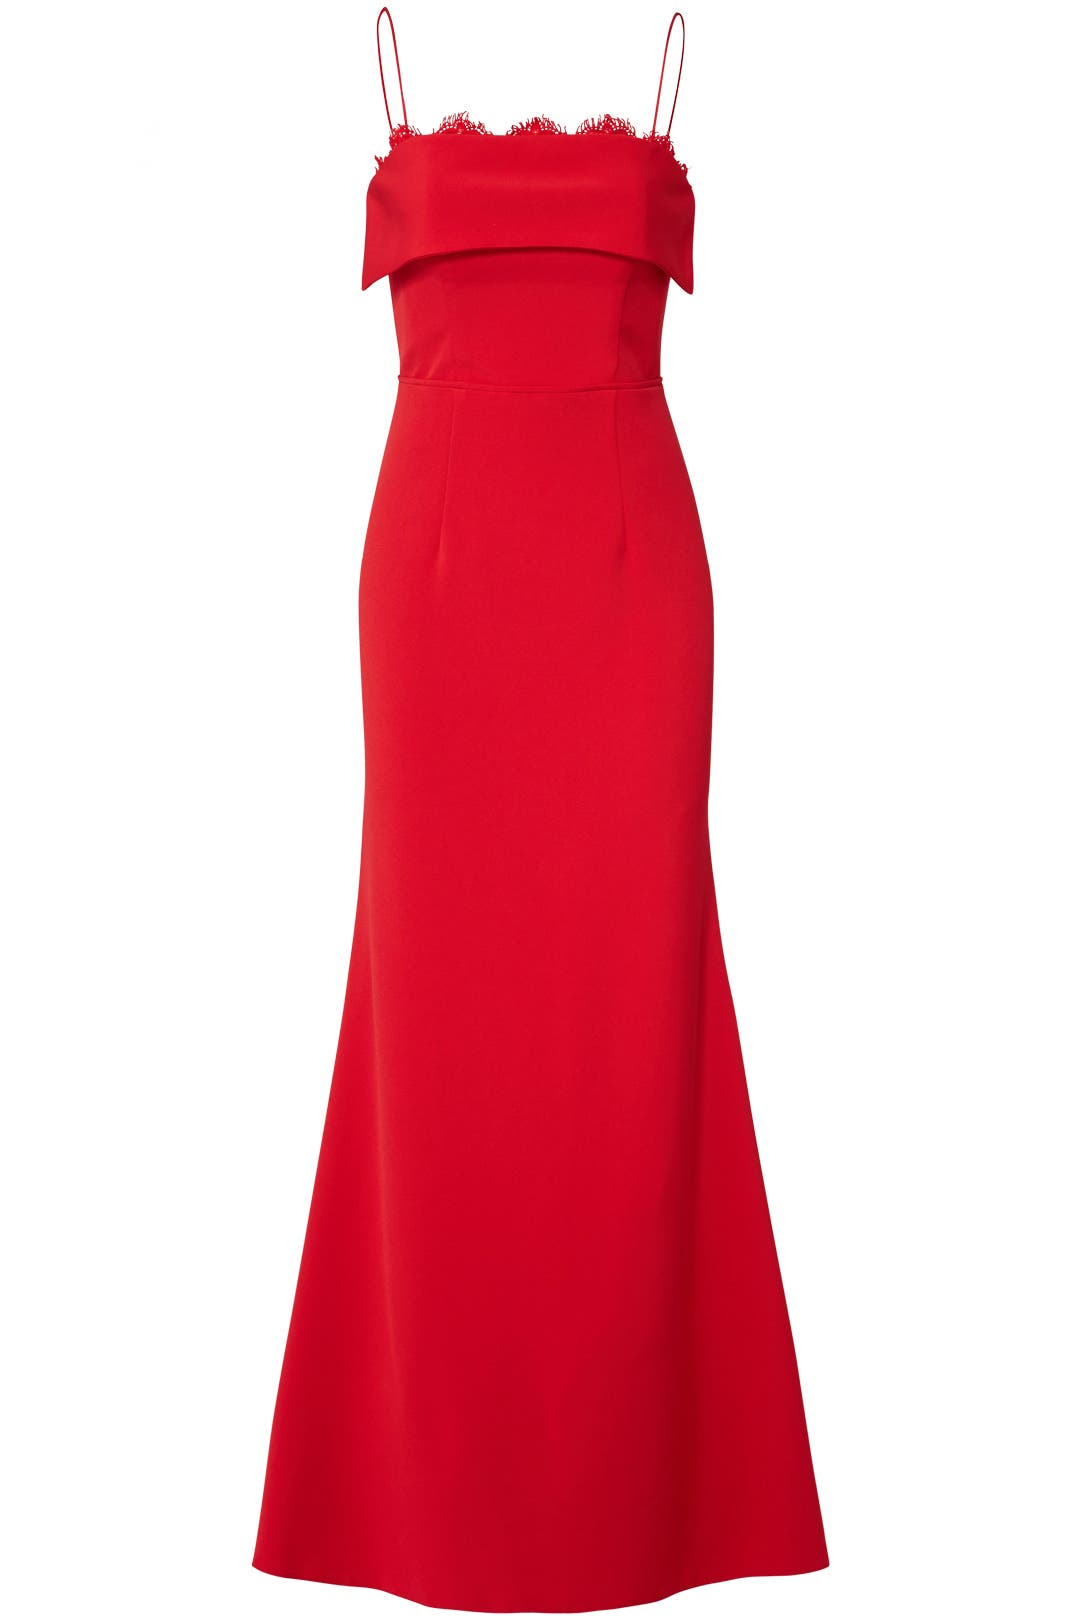 Cherry Crepe Gown by JS Collection for $70   Rent the Runway